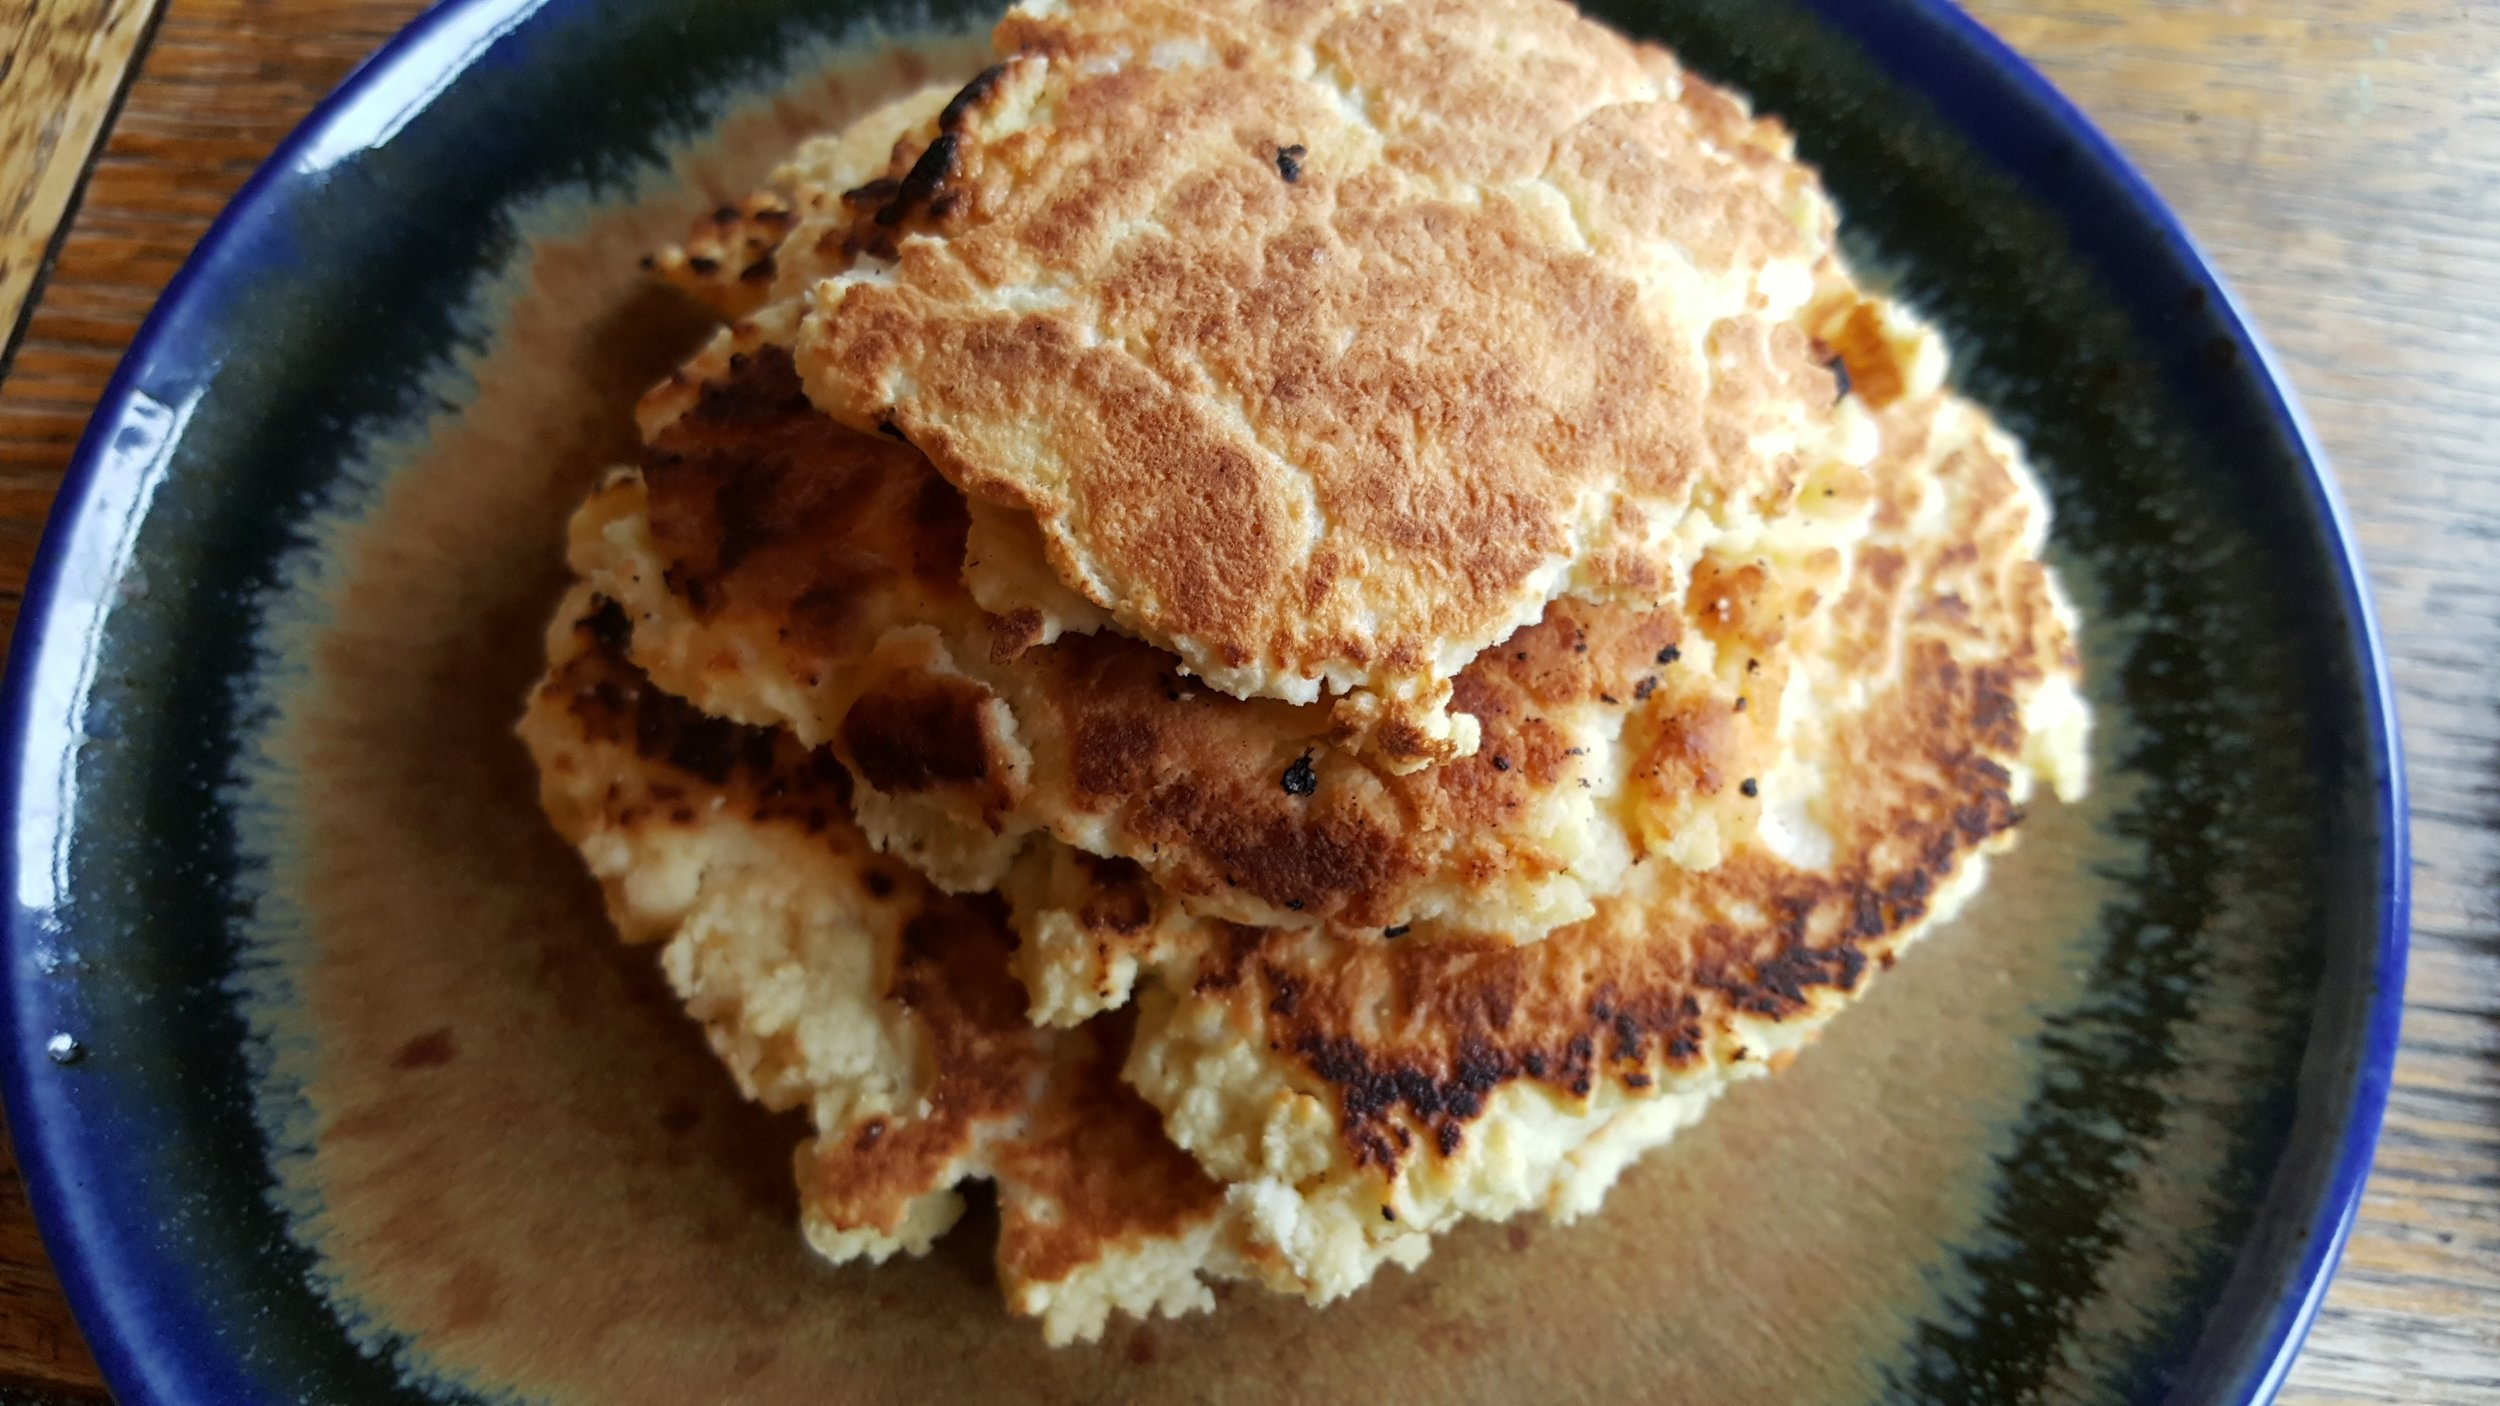 These grain-free pancakes are made of coconut flour and are the most fluffy delicious thing ever! Look for recipe in the upcoming Asbury Park Press article.